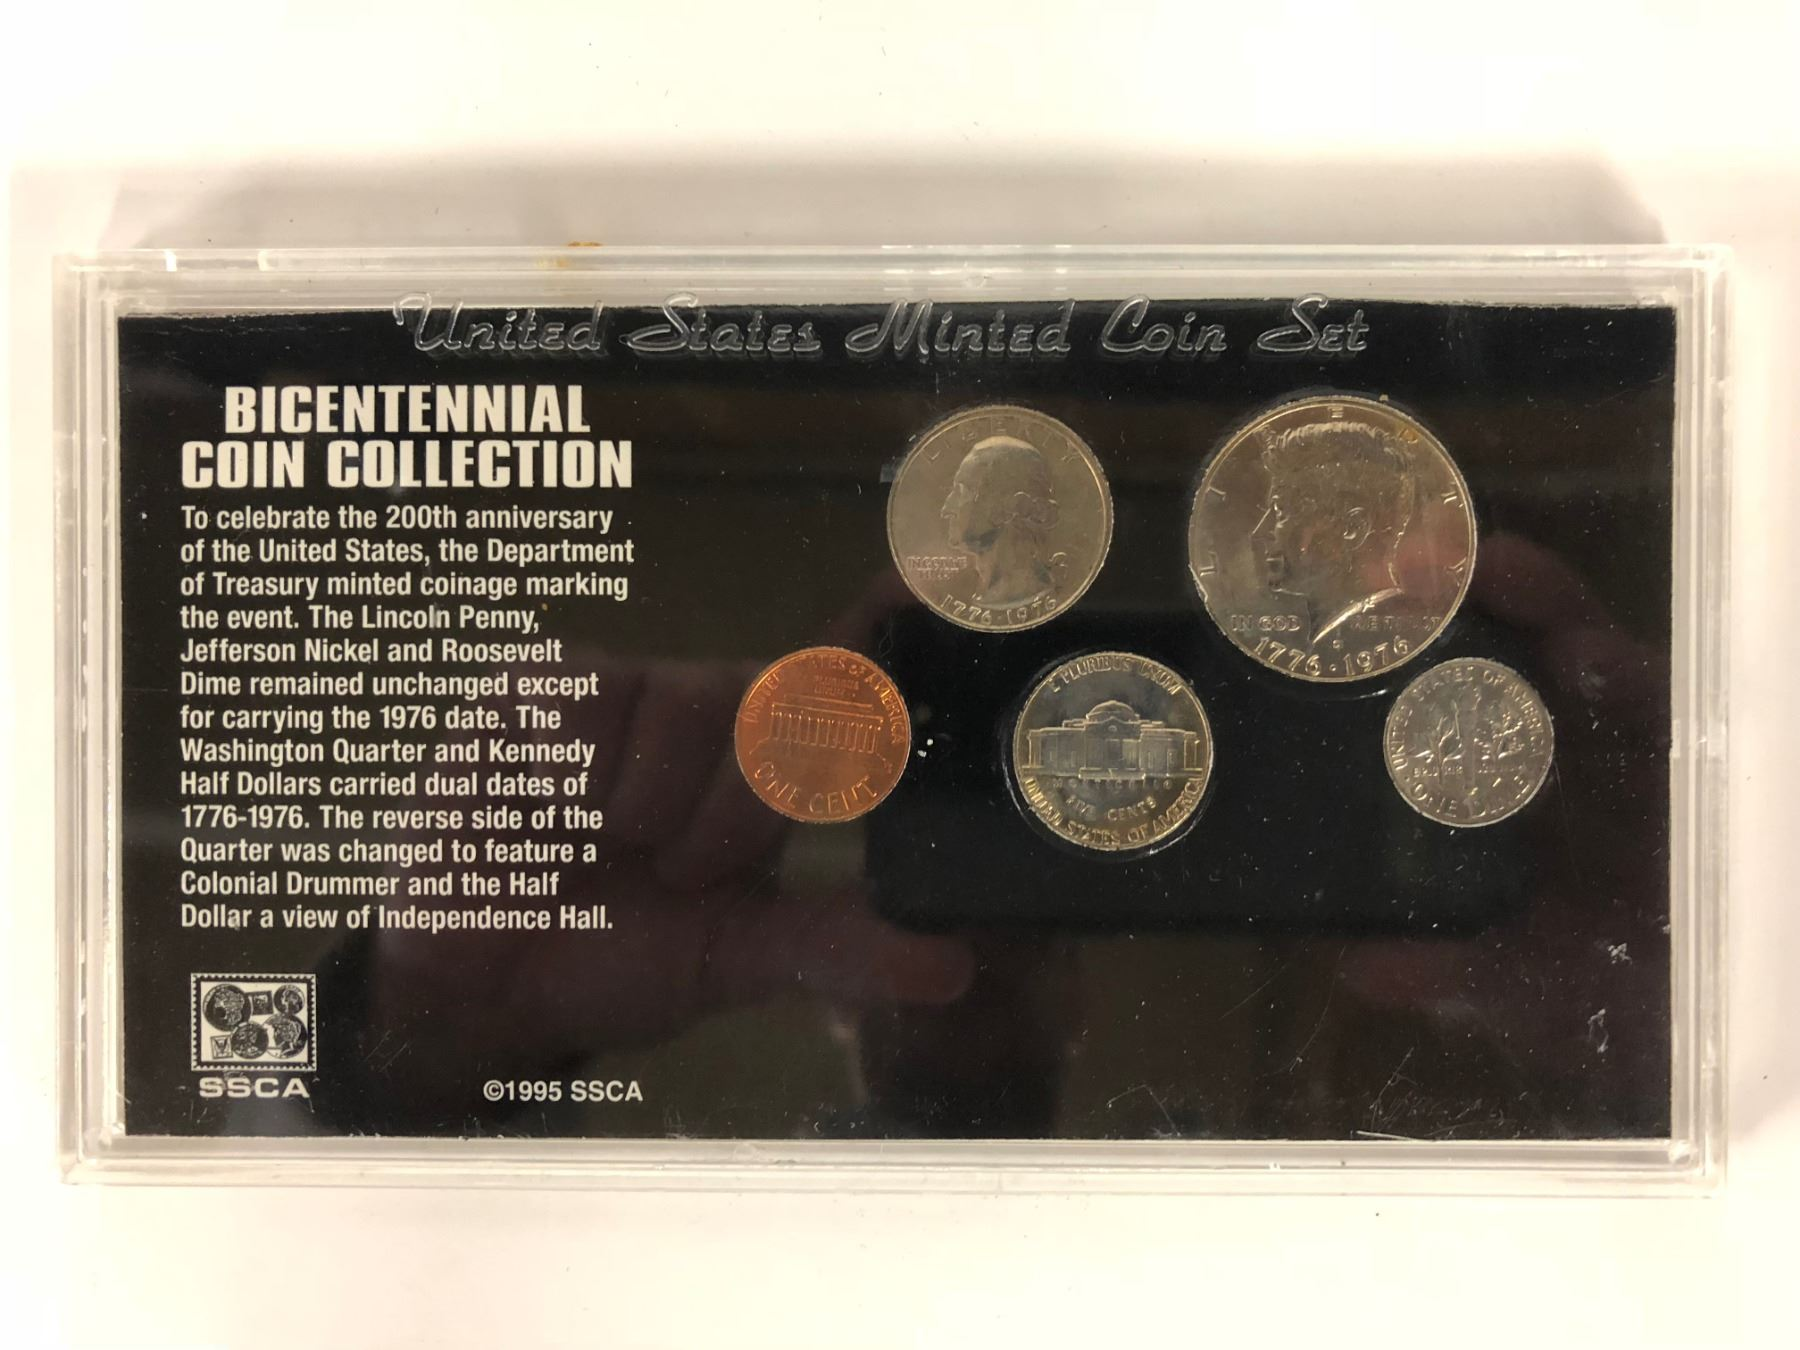 BICENTENNIAL COIN COLLECTION (UNITED STATES MINTED COIN SET)